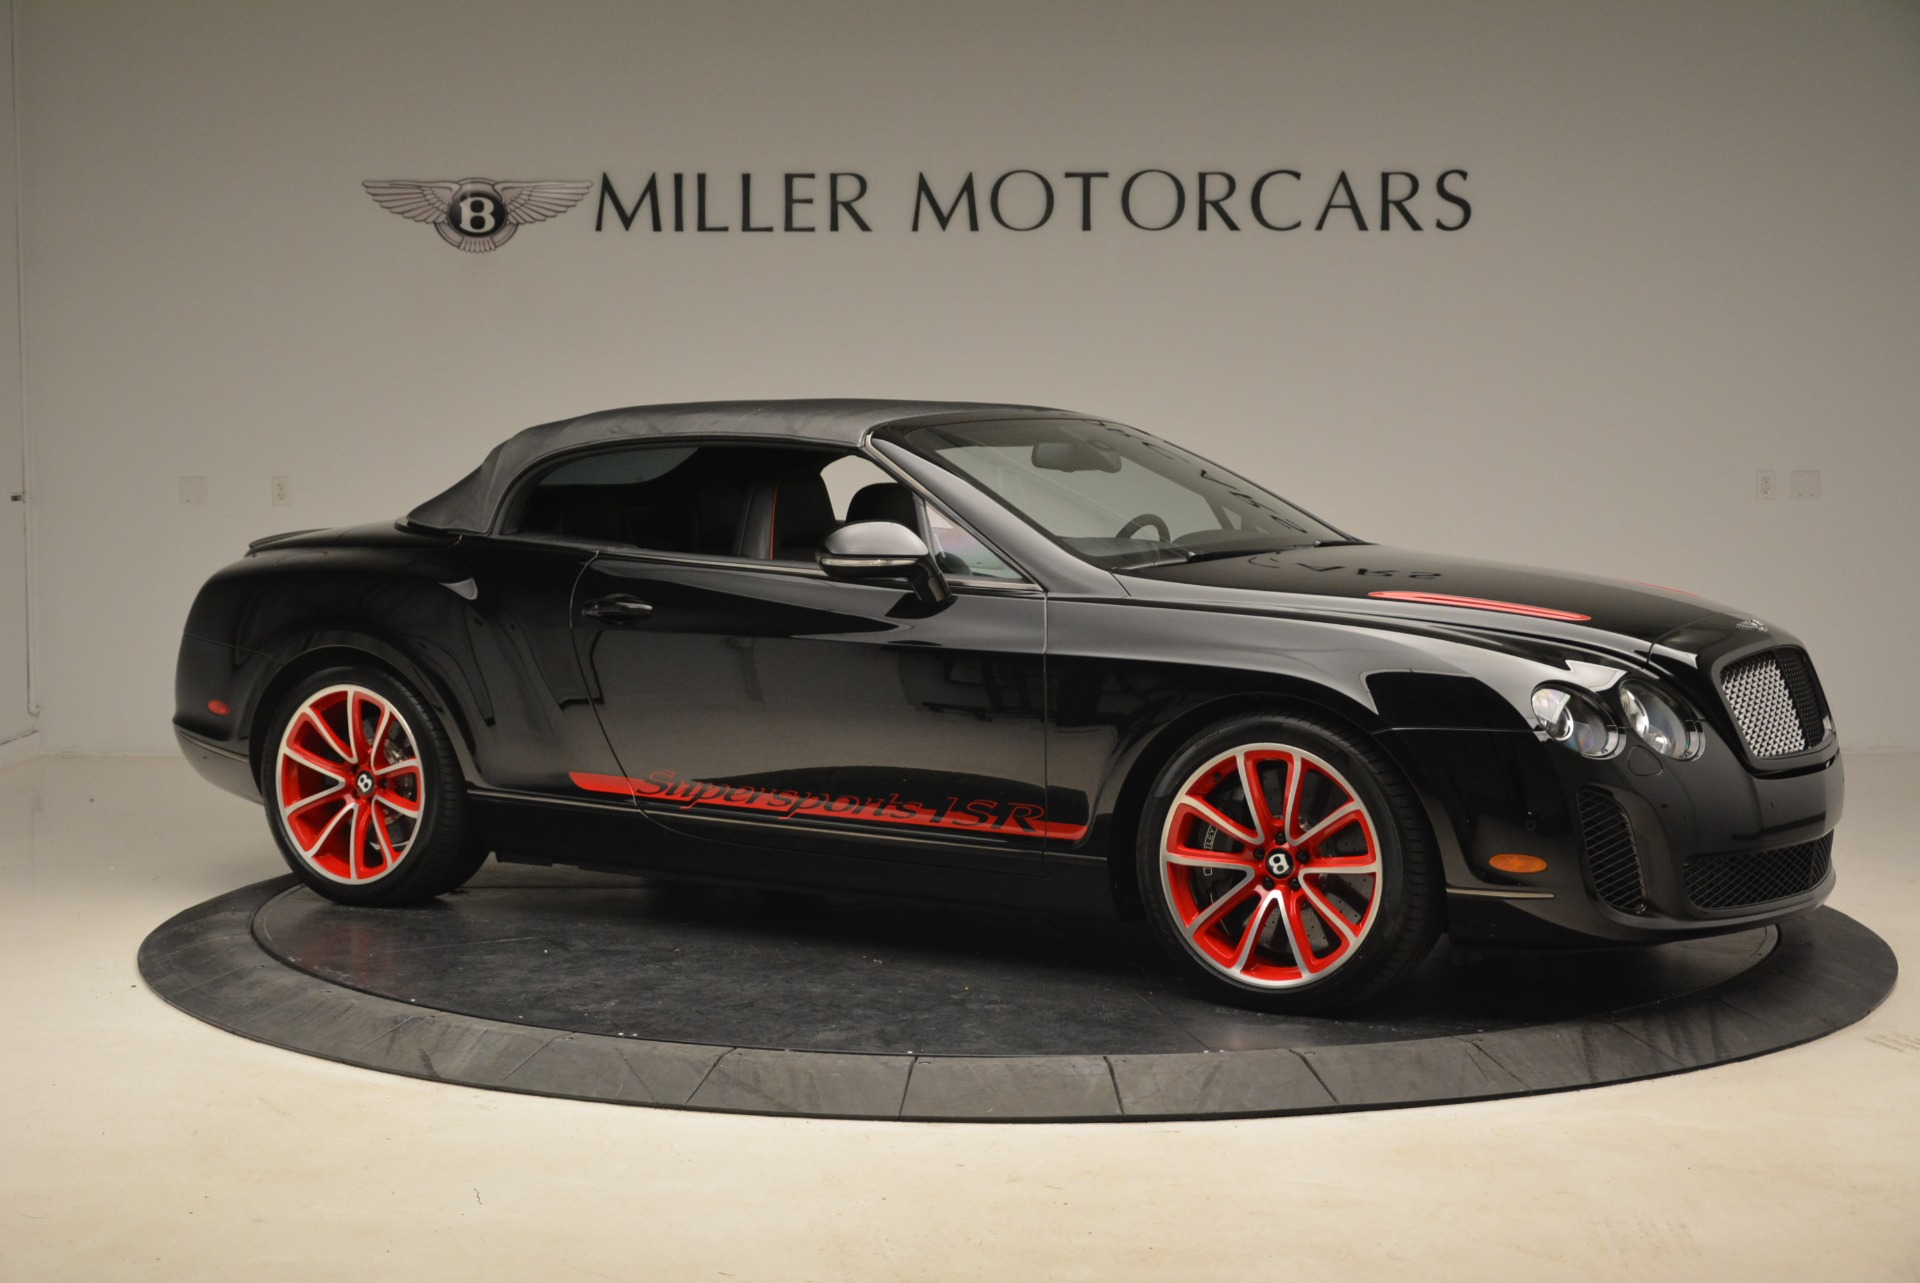 Used 2013 Bentley Continental GT Supersports Convertible ISR For Sale In Westport, CT 2151_p23